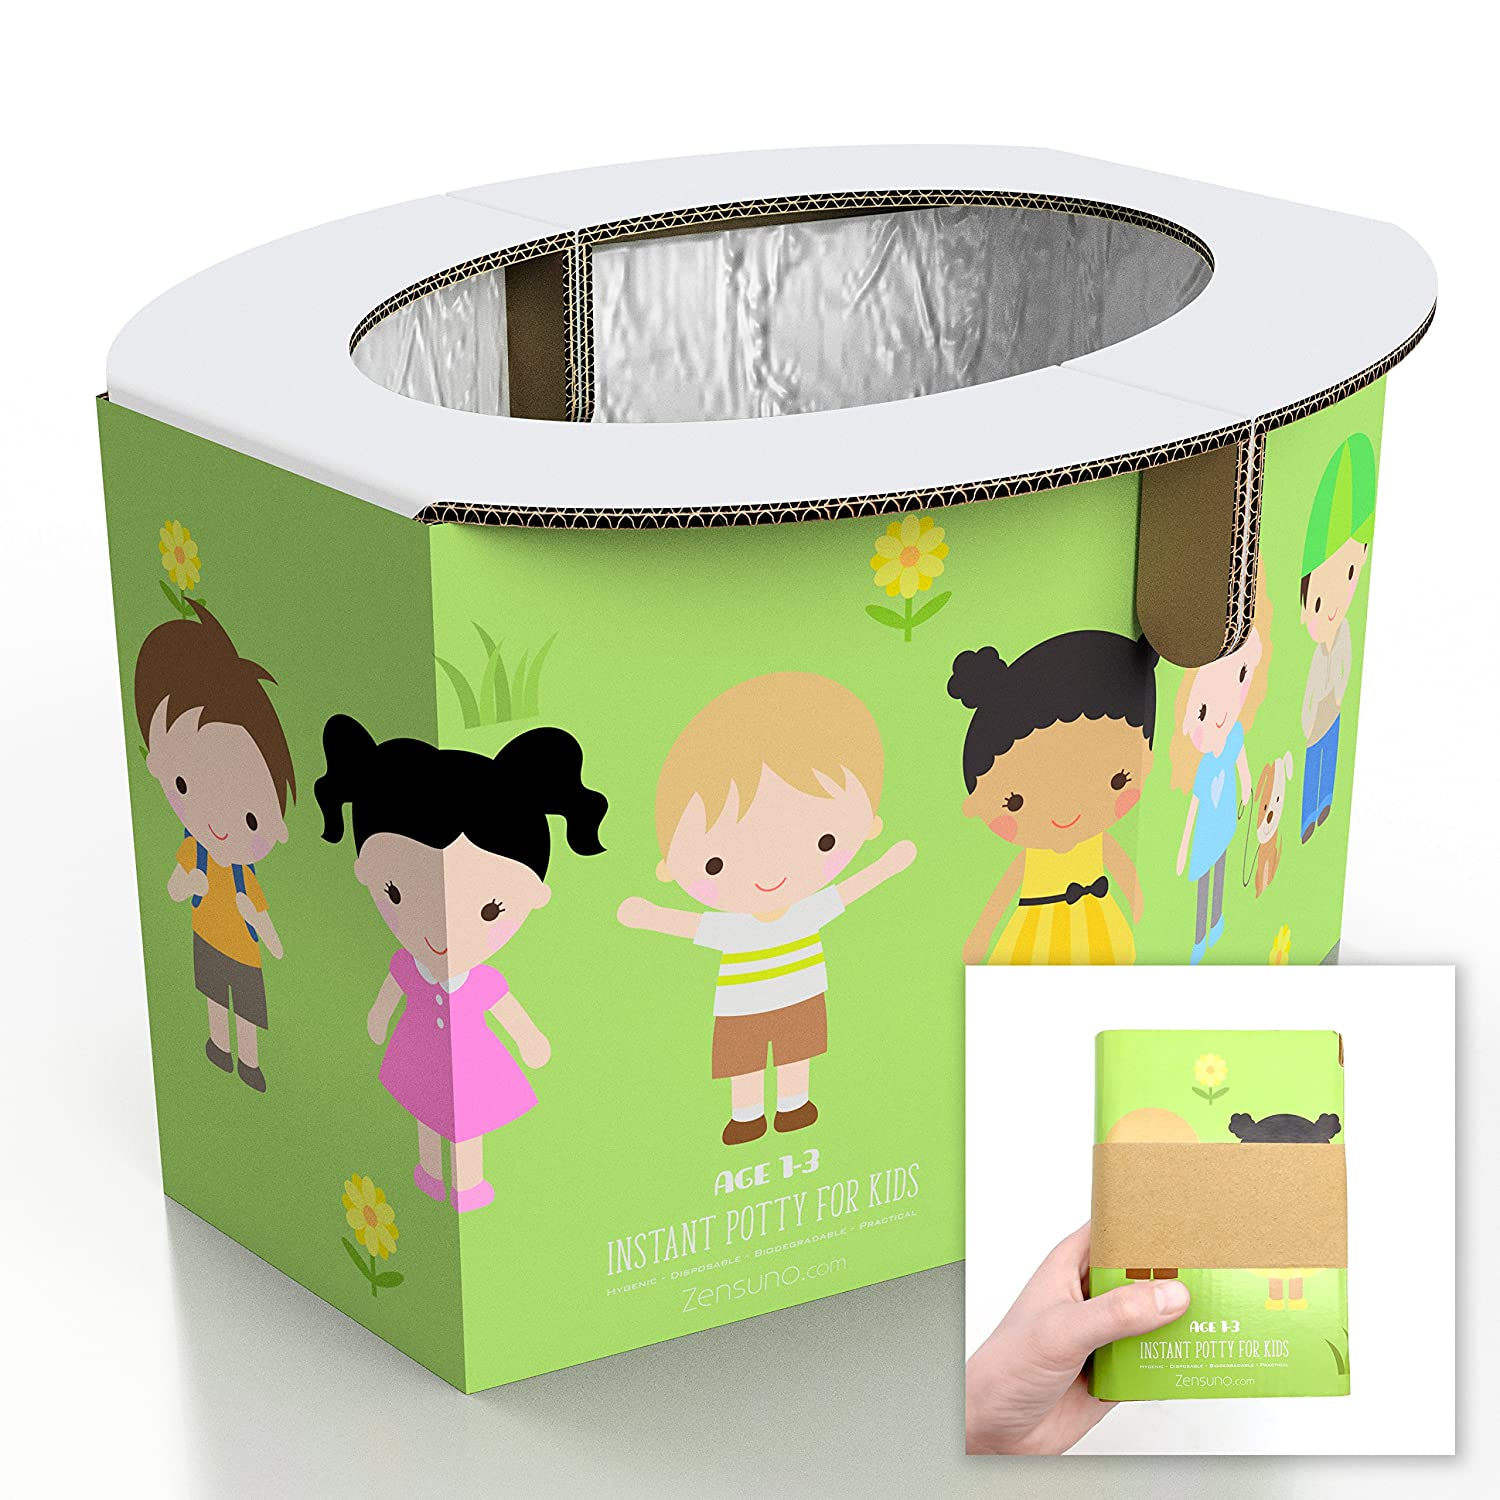 Zensuno Emergency Foldable Portable Disposable Hygienic Instant Potty for Kids Toddlers Small Children and Babies, Great for Road Trip, Camping, Traveling, Hiking and Car Essential (1 Pack, Age 1-3)